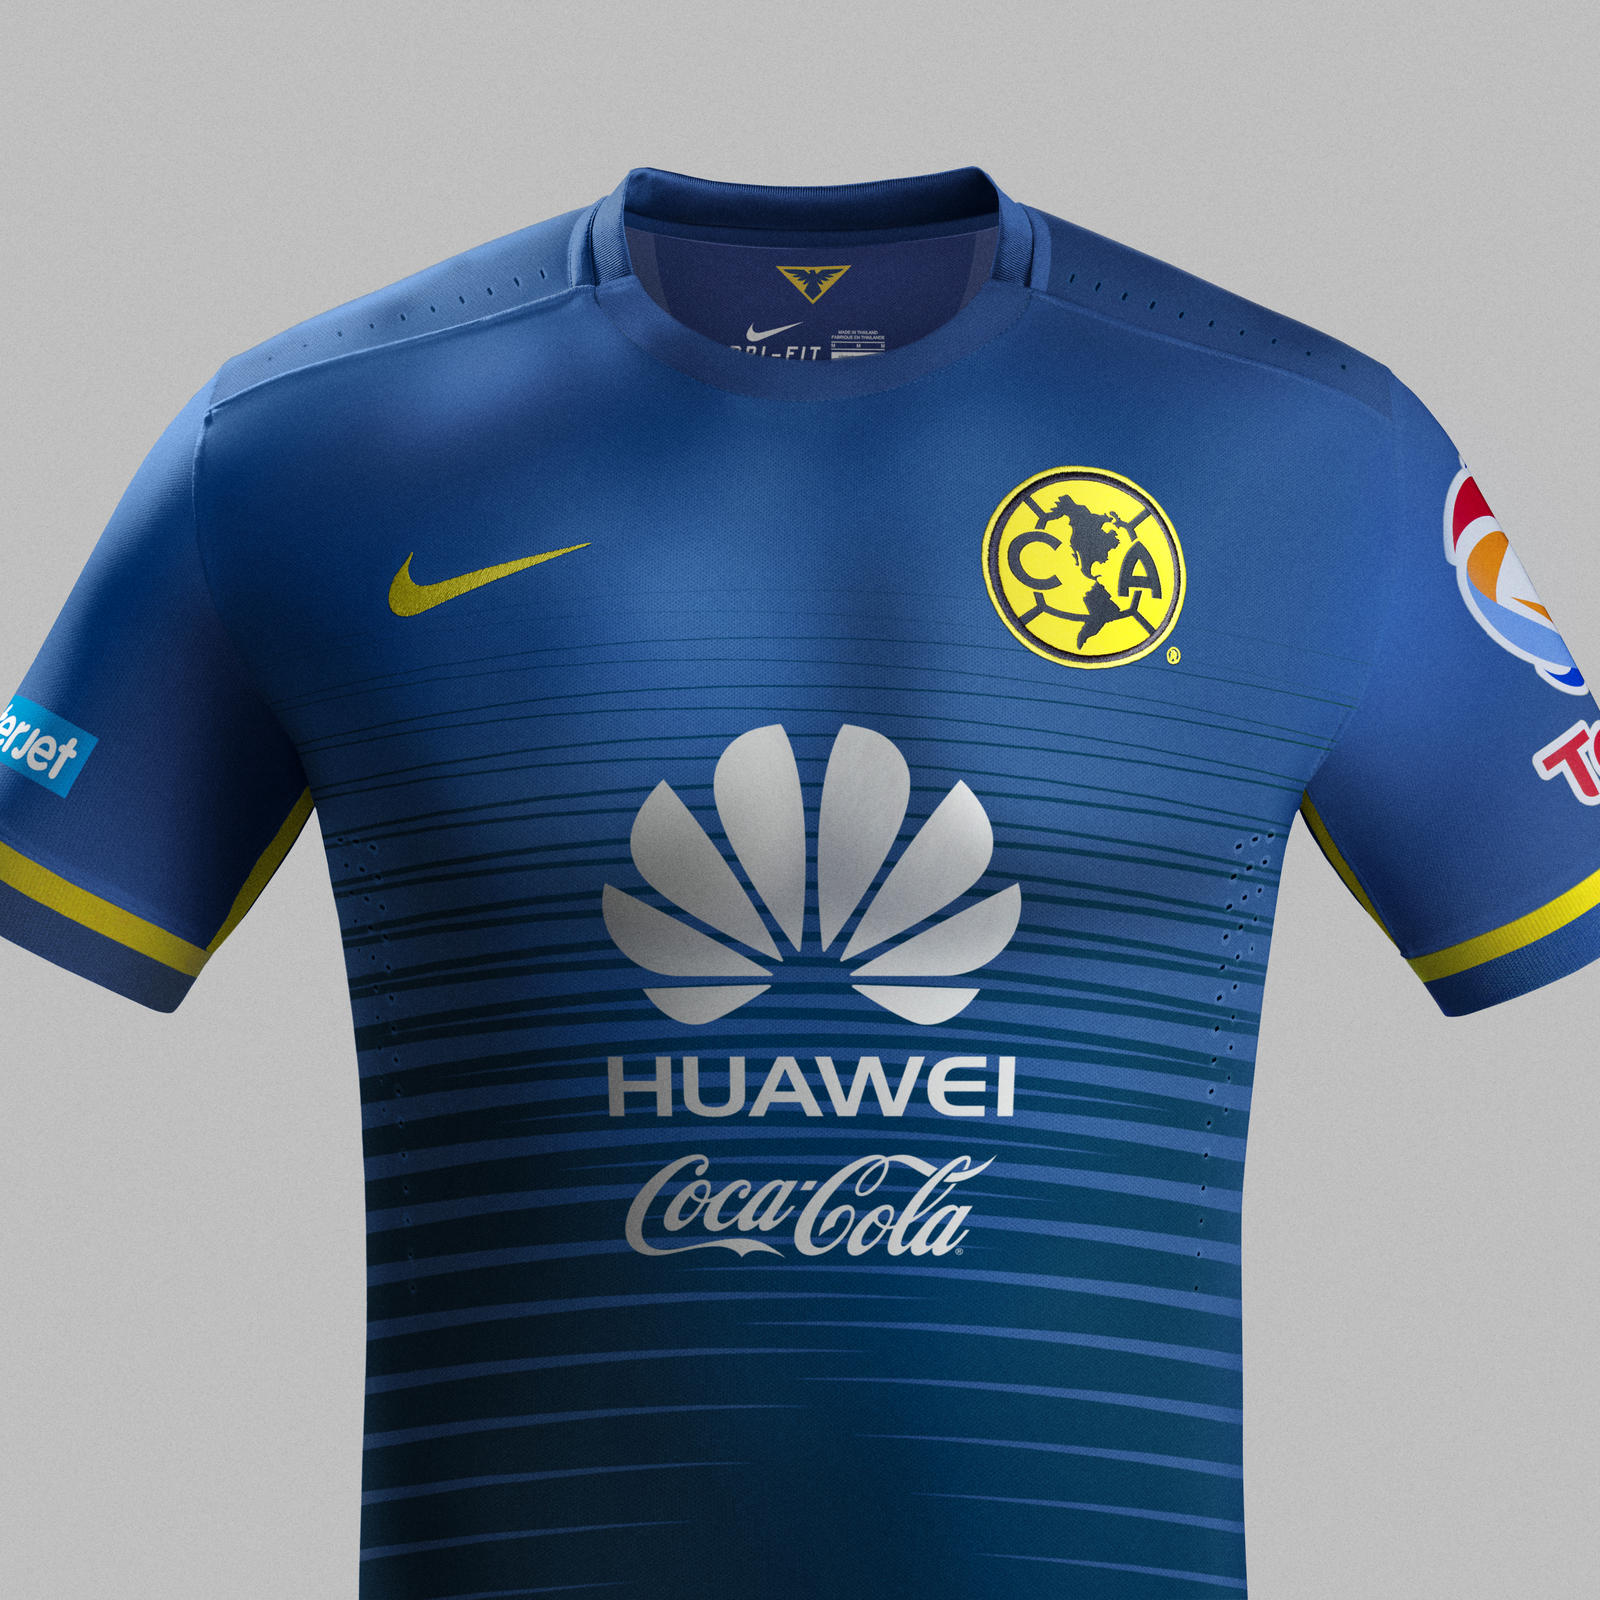 low priced 11360 c5049 Club América Home and Away Kits for 2015-16 - Nike News